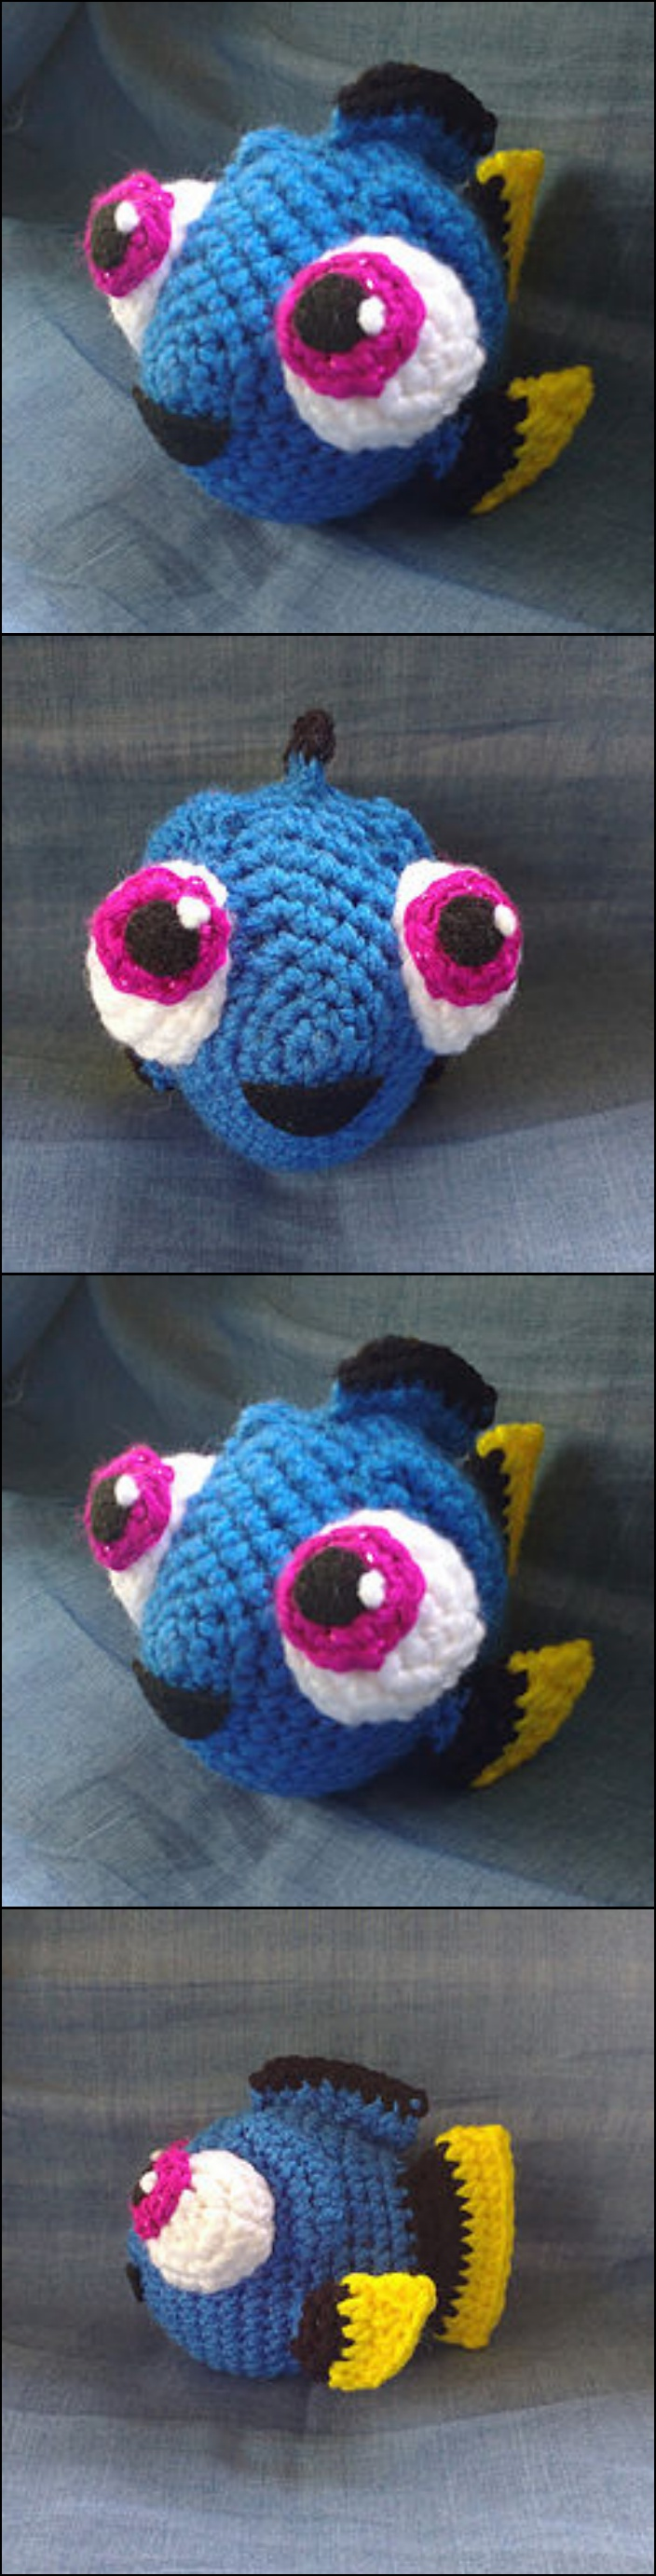 Finding Dory Crochet / Knitting Patterns - Page 4 of 4